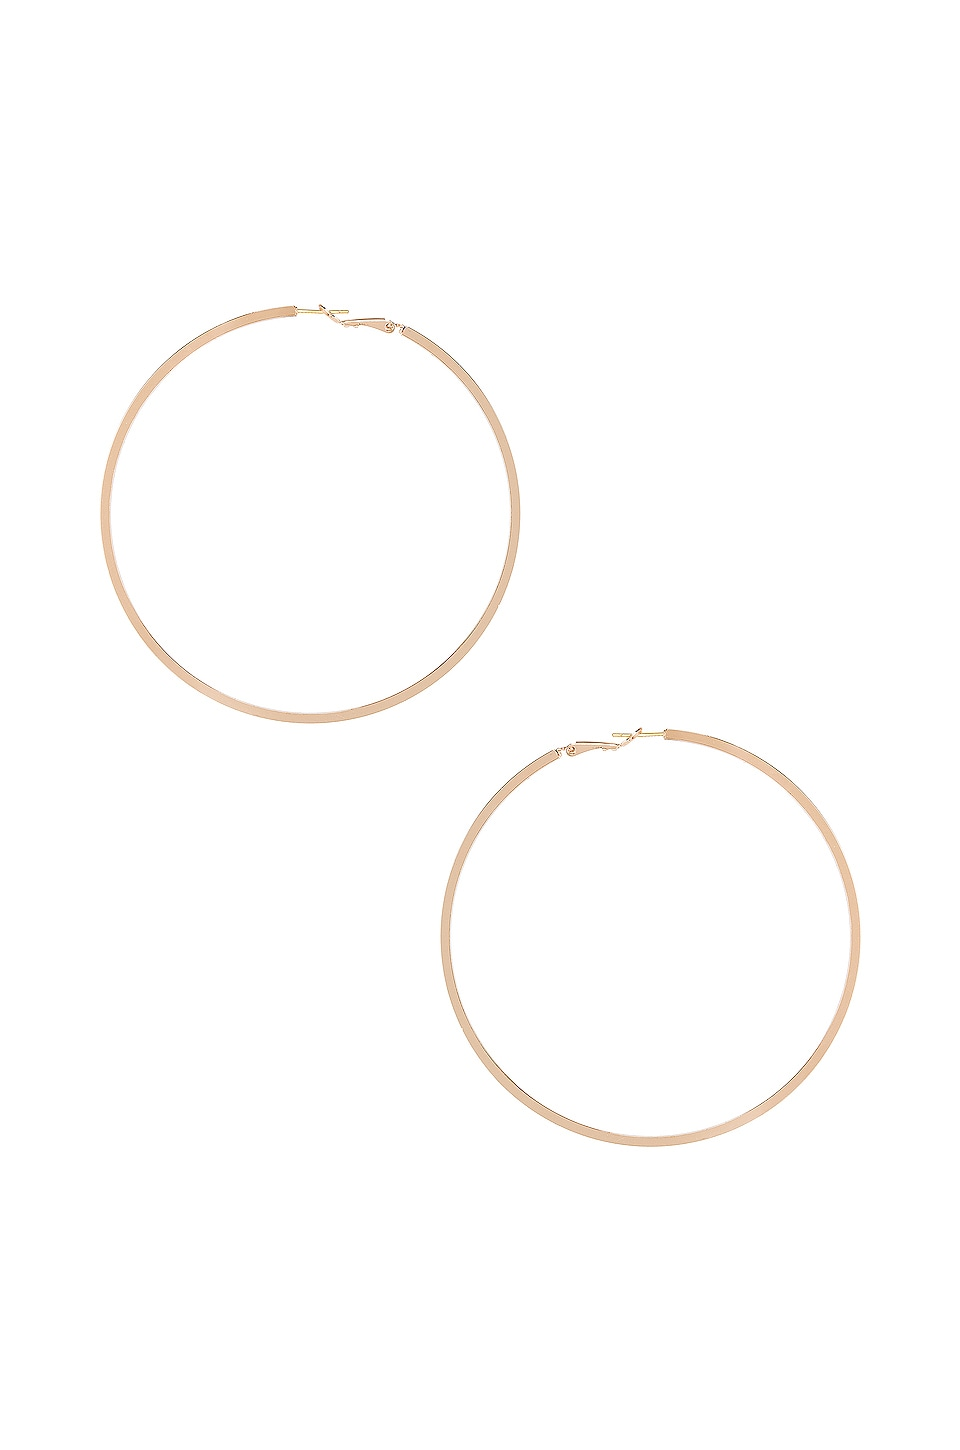 Frasier Sterling Divine Hoop Earrings in Gold